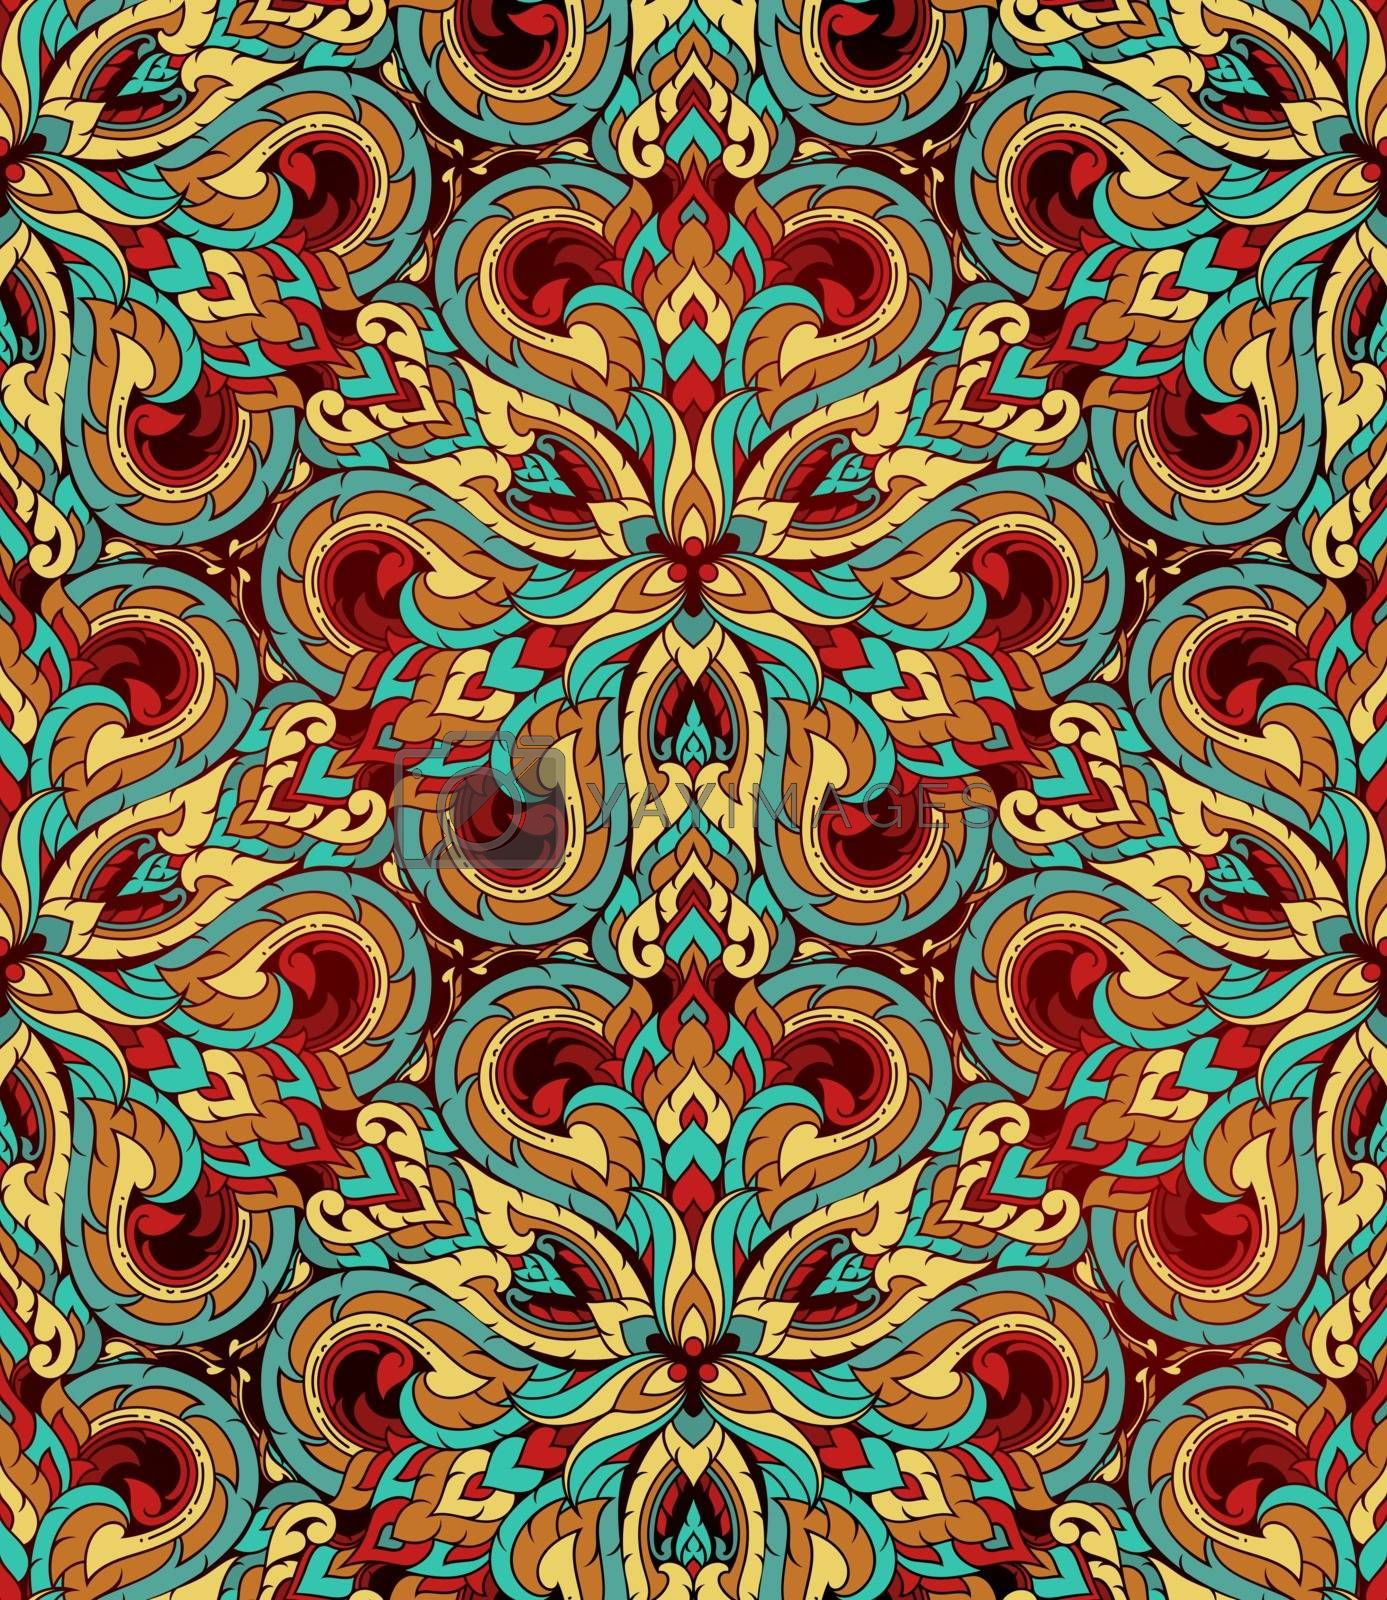 Thai traditional ethnic art abstract, seamless pattern.